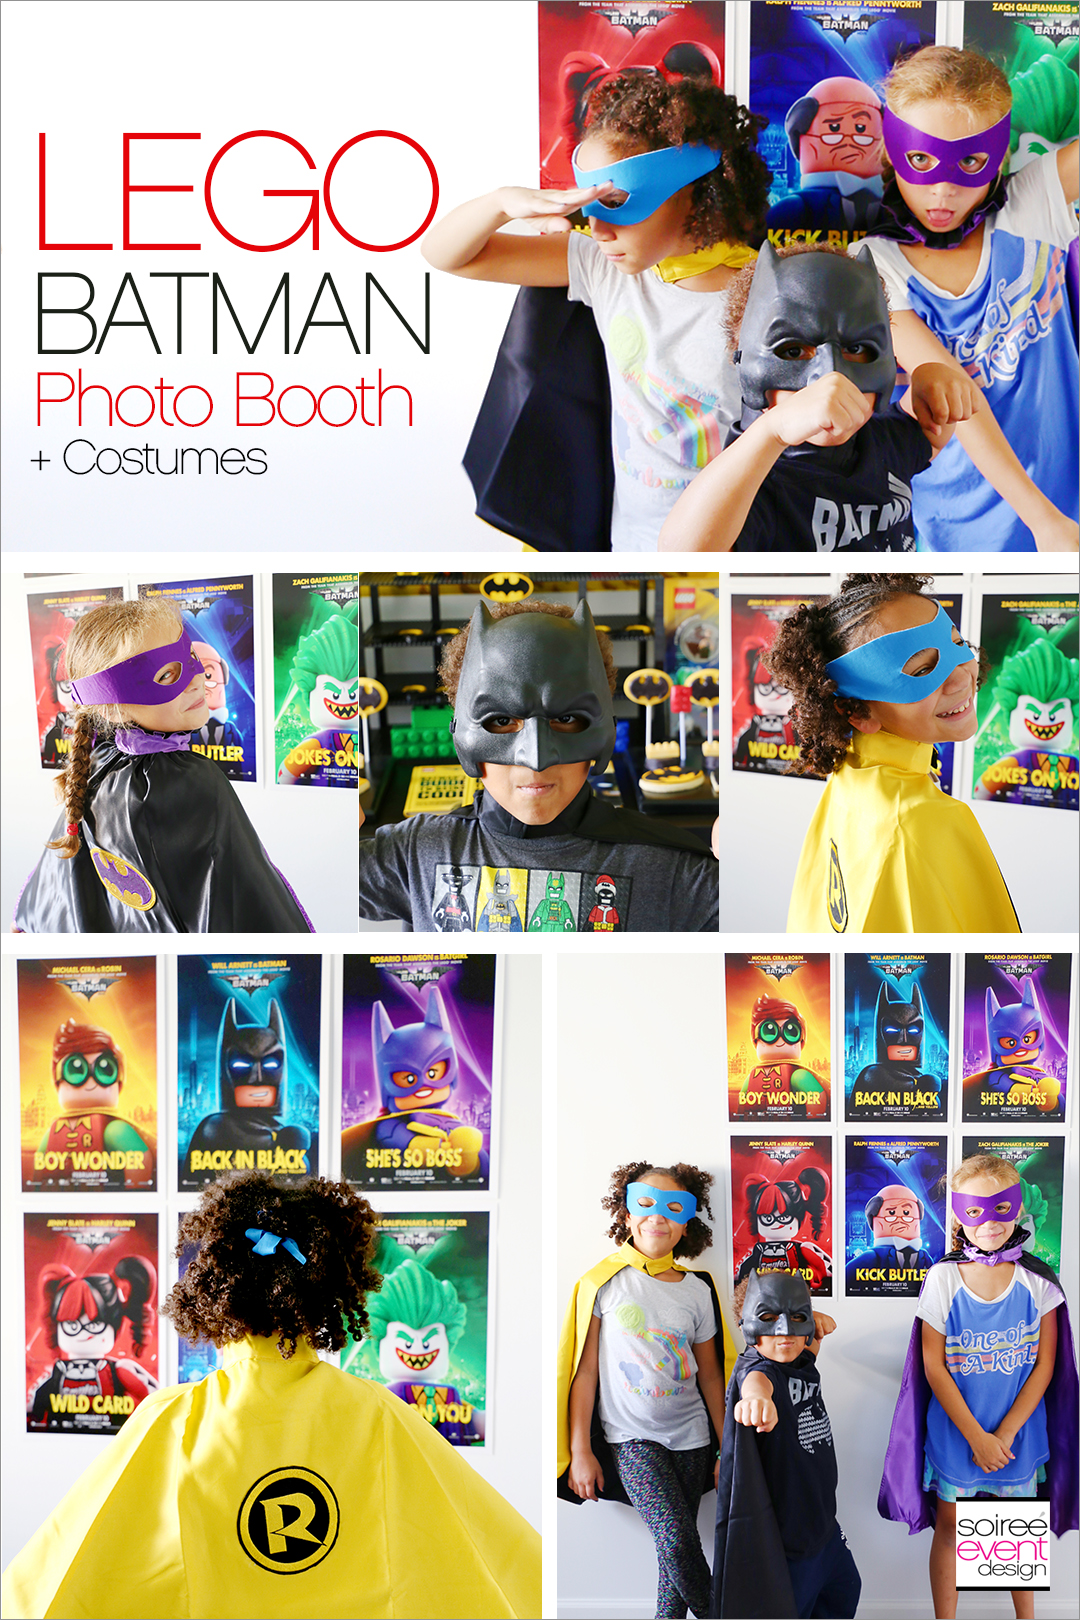 Lego Batman Party Ideas - Batman Photo Booth - Soiree Event Design